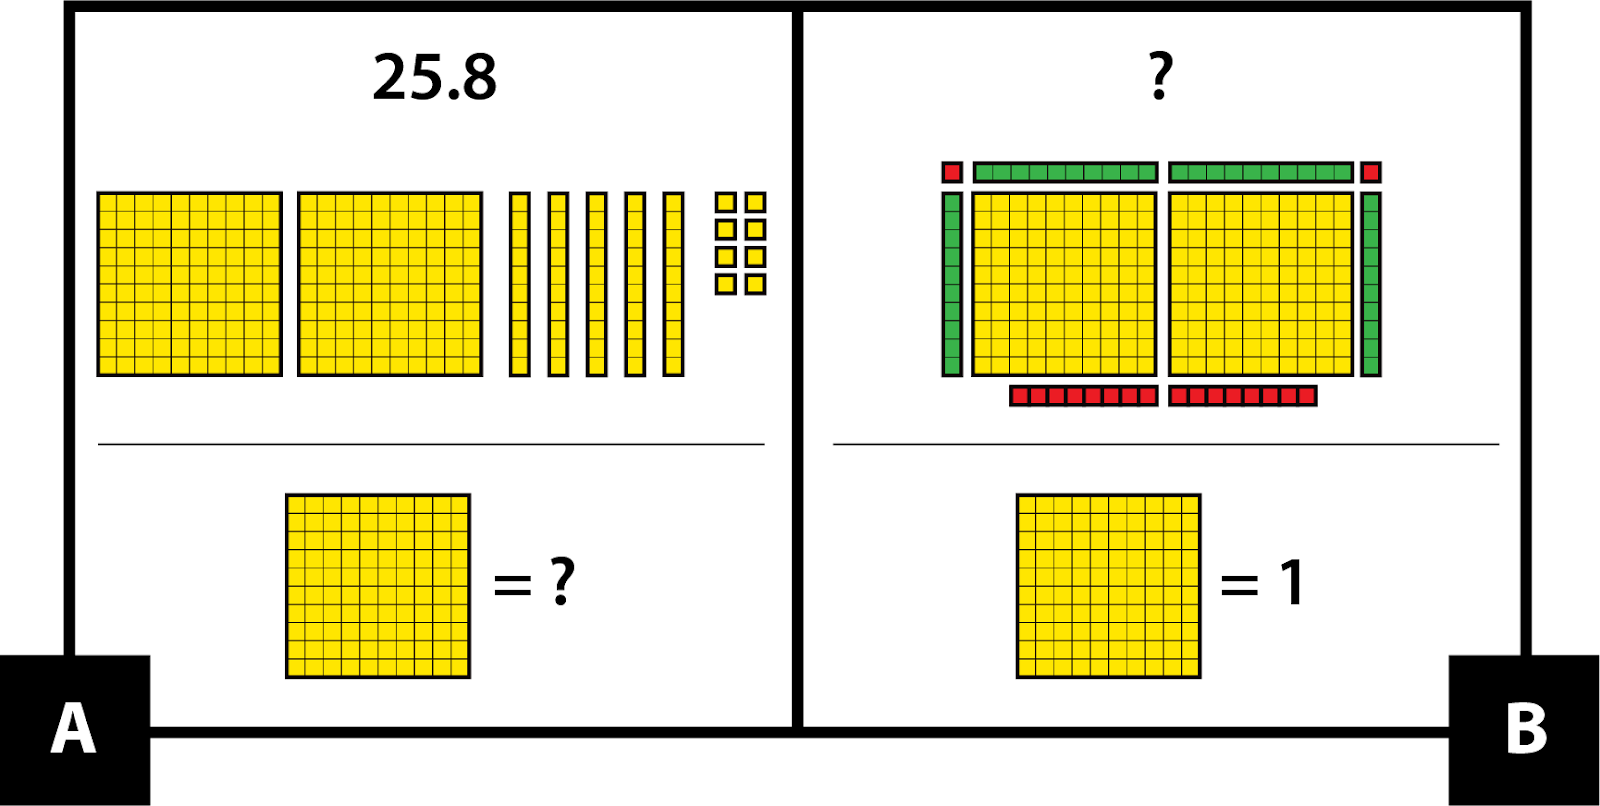 A: Yellow base ten pieces represent 25.8 as 2 mats, 5 rods, and 8 units. What is the value of each mat? B: Base ten pieces represent an unknown number as 2 yellow mats, 4 green rods, and 18 red units. Each mat = 1.